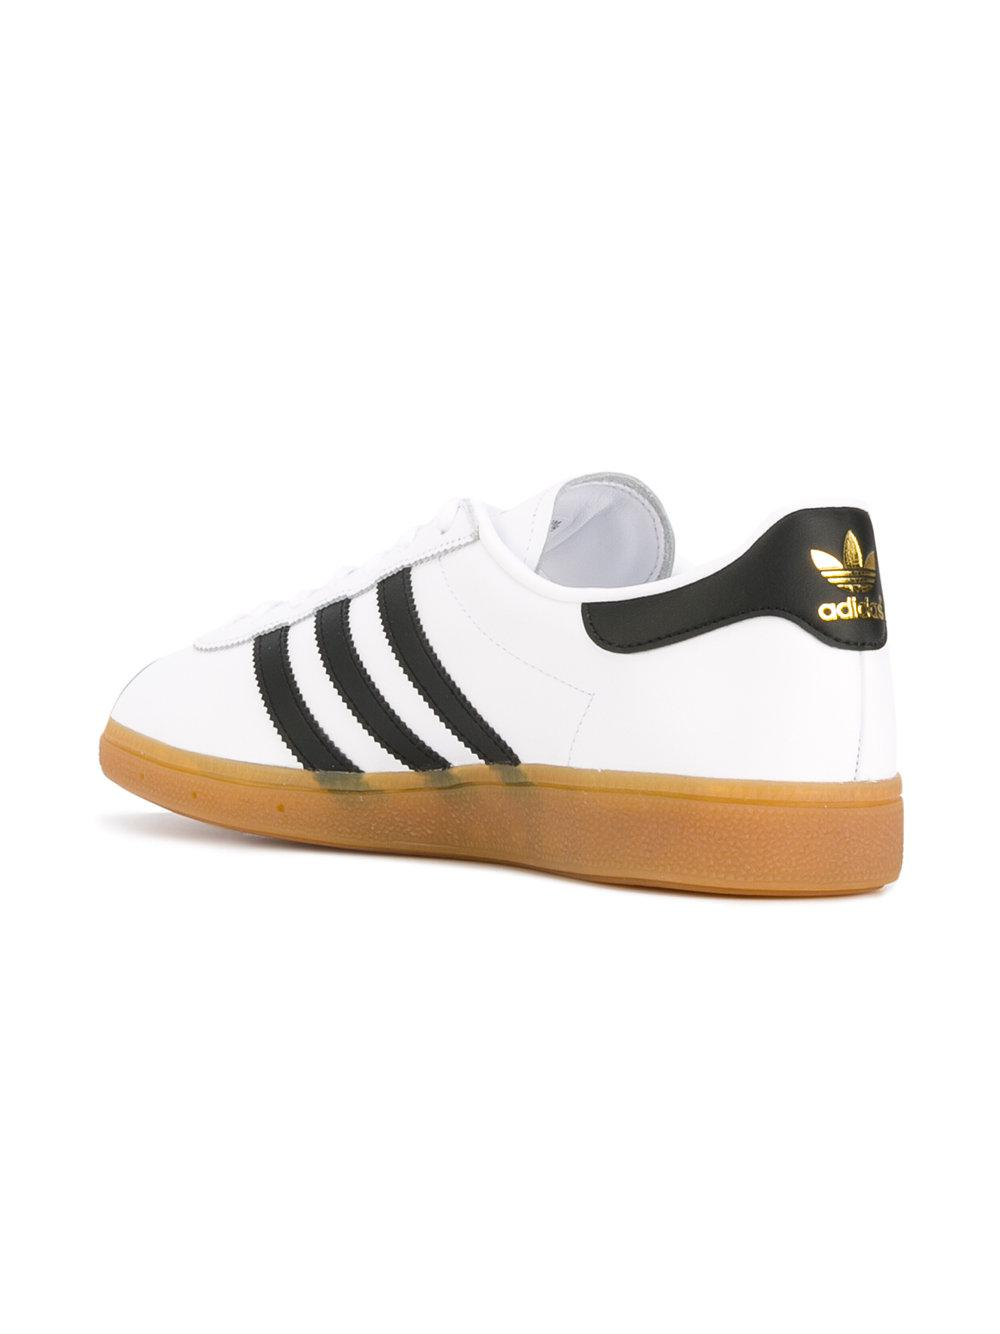 adidas Originals Leather Munchen Sneakers in White for Men